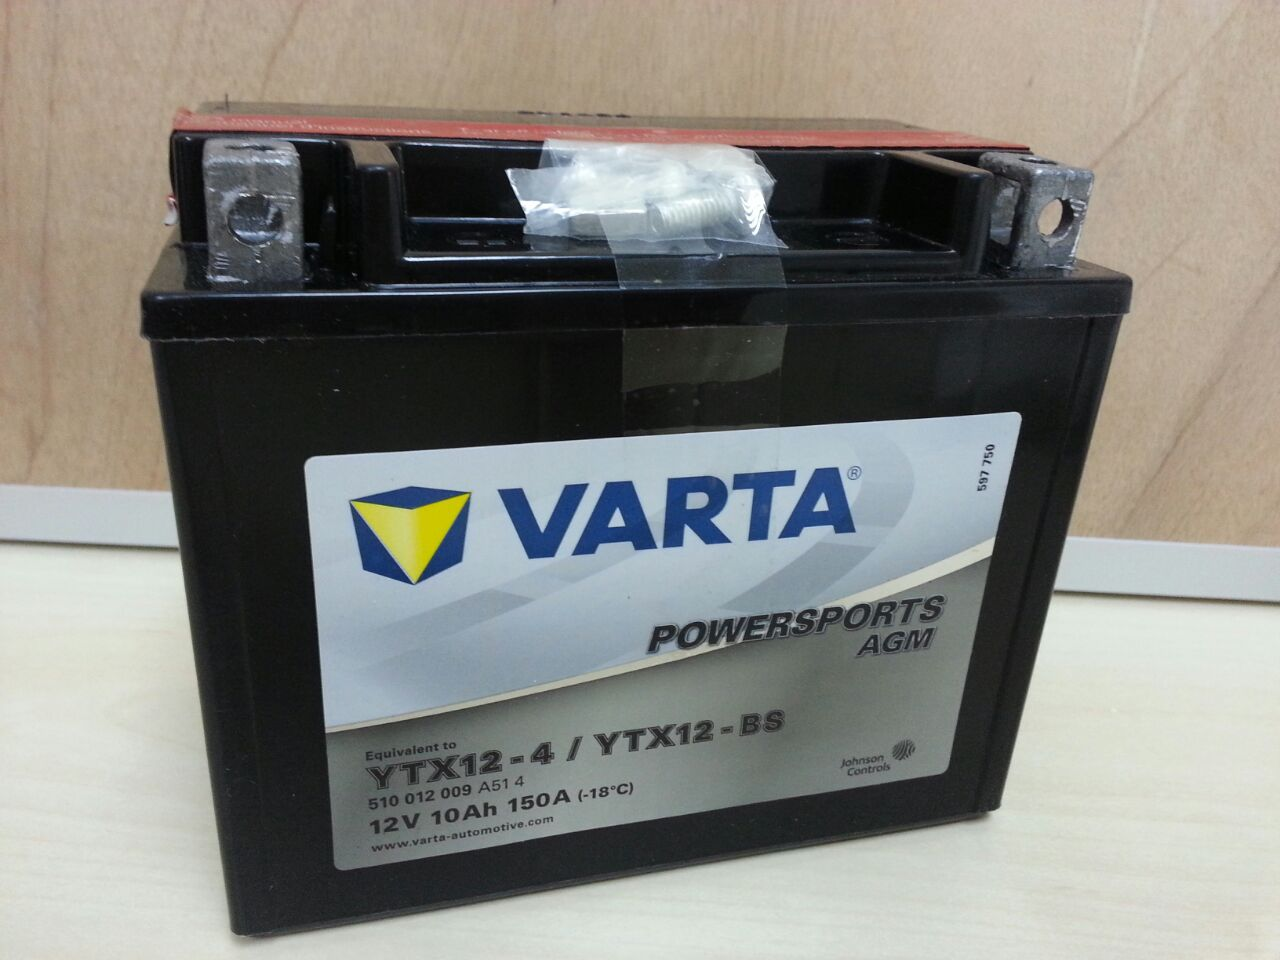 0da77ae1f7a Varta Powersports AGM. YTX12-BS. Contact 017-7117790 for further details.  www.facebook.com/vartamalaysia